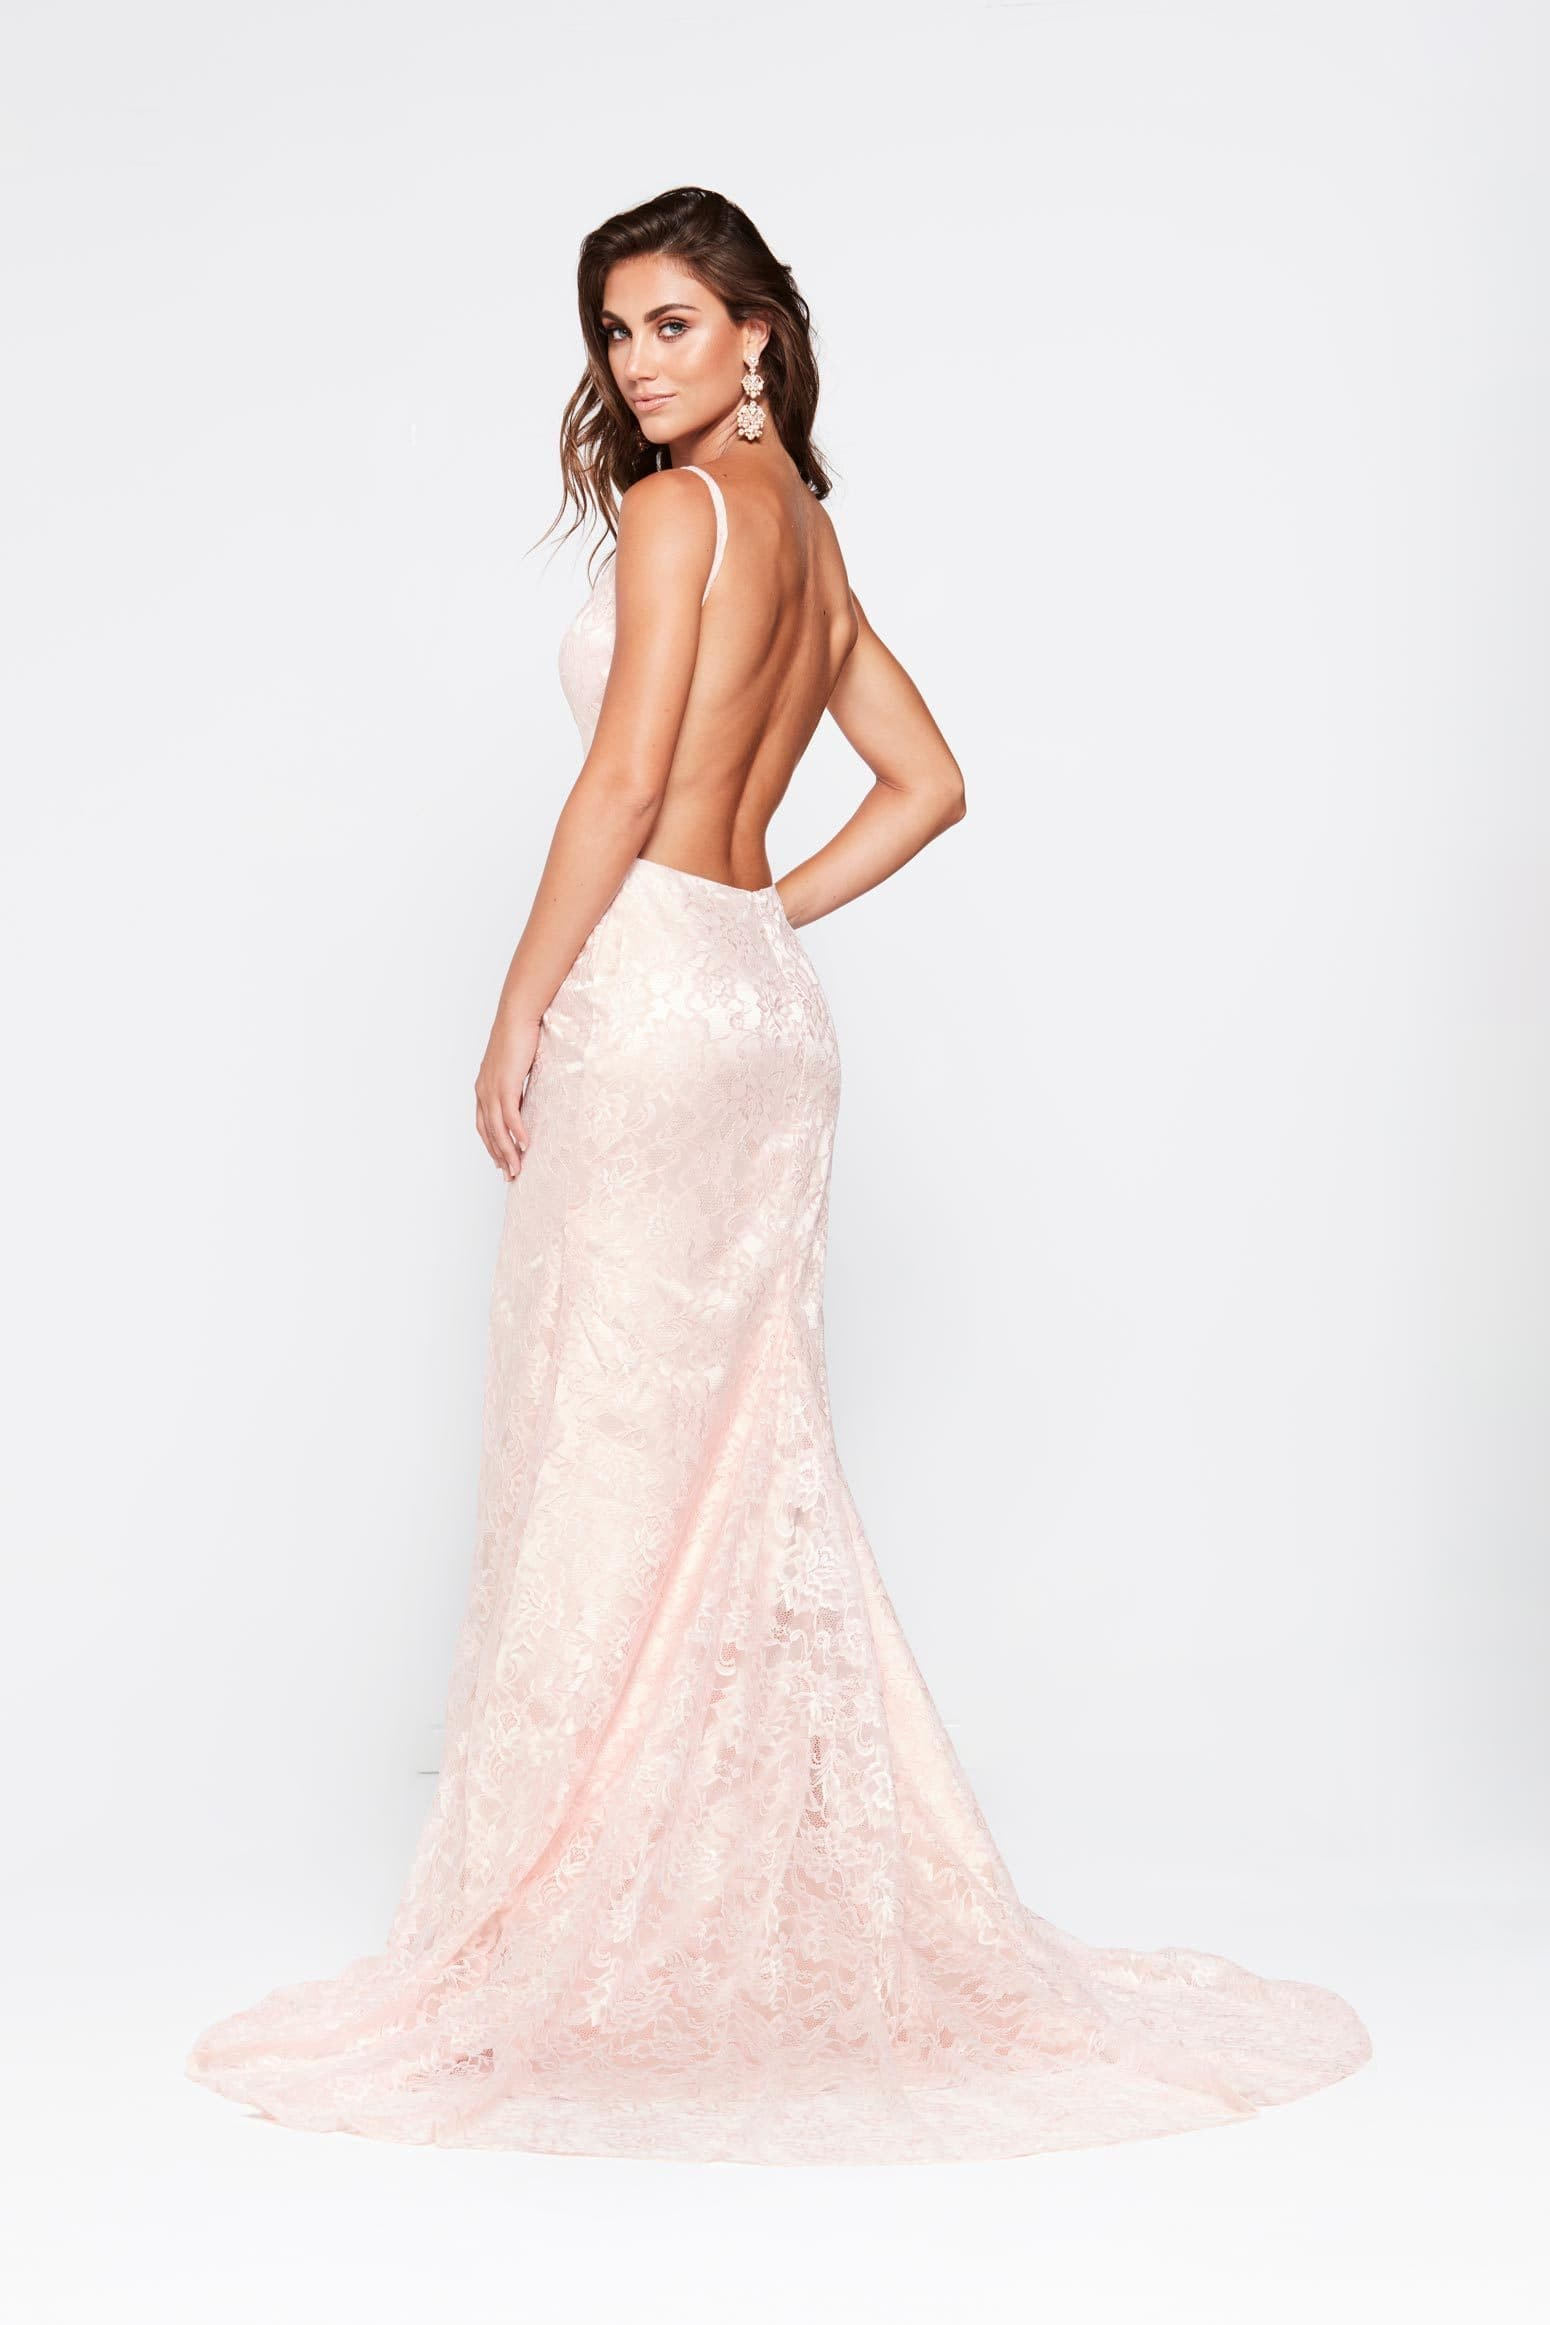 A&N Ayla - Blush Lace Gown with V Neck and Front Slit